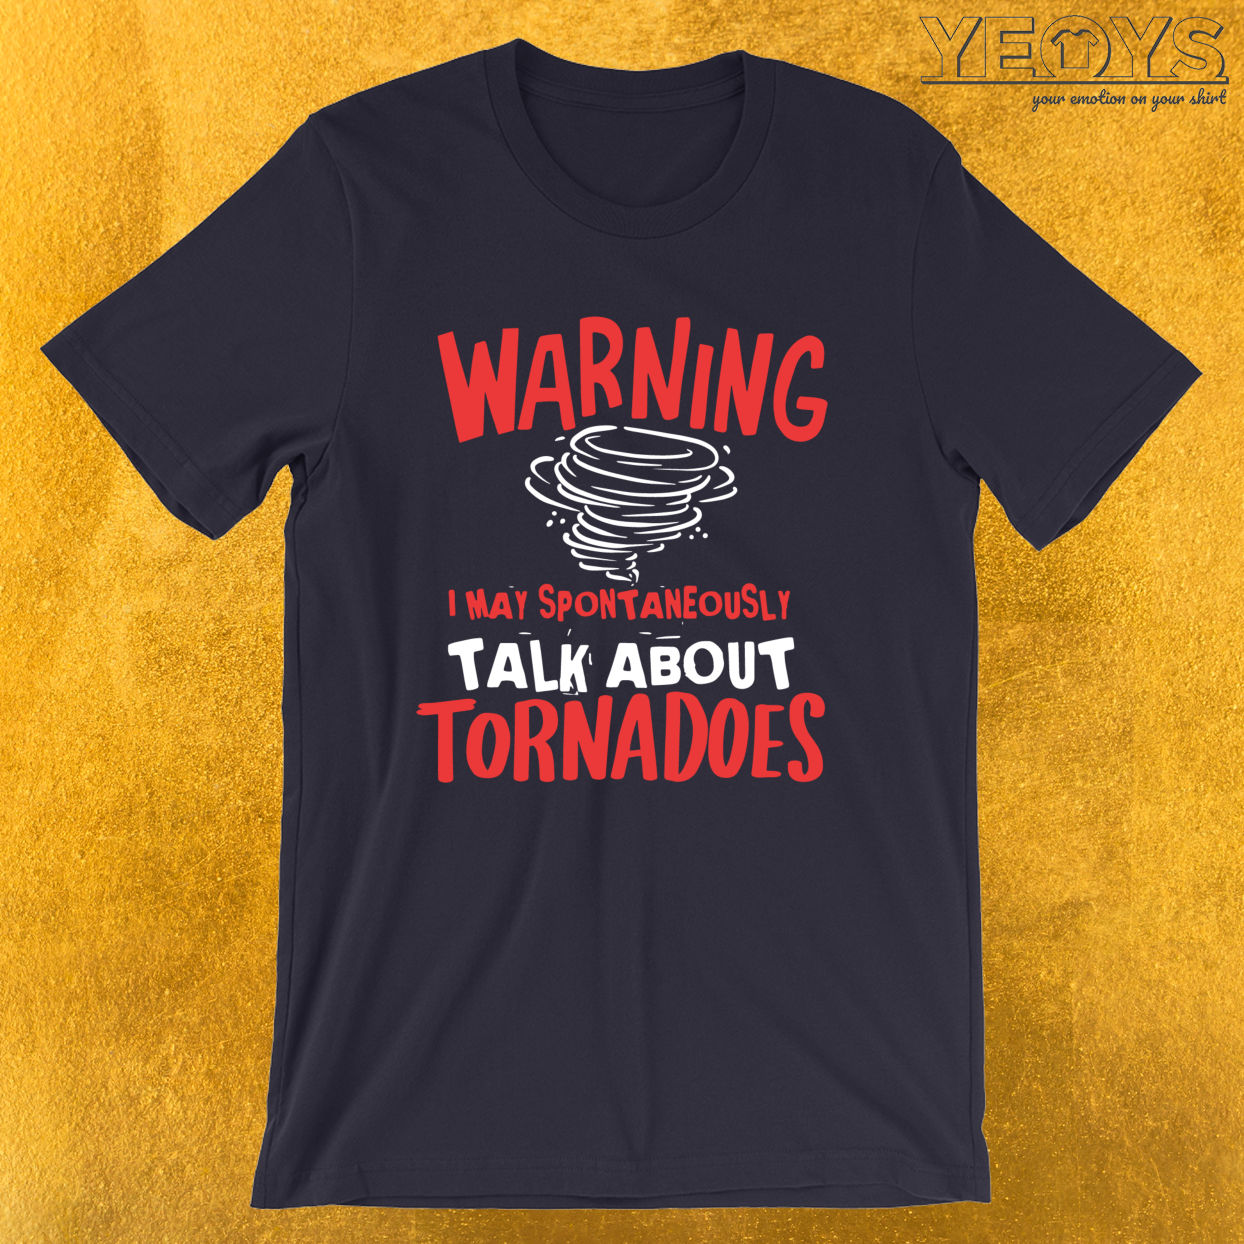 Warning May Talk About Tornadoes – Tornado Storm Chasing Tee